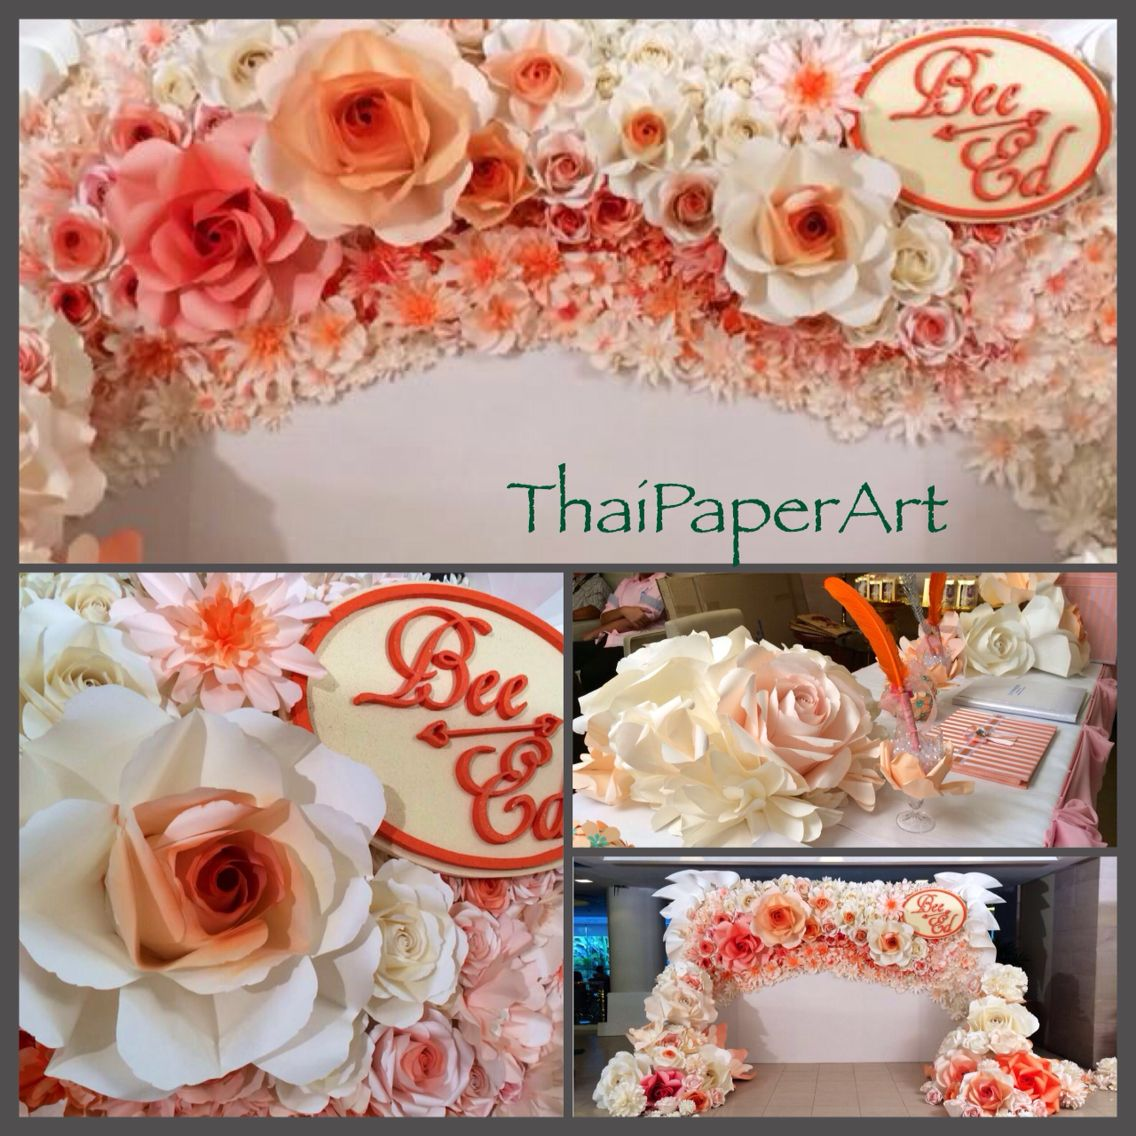 We provide high quality of paper flowers for every beautiful craft we provide high quality of paper flowers for every beautiful craft projects wedding reception and parties our craft supply direct from bangkok thailand mightylinksfo